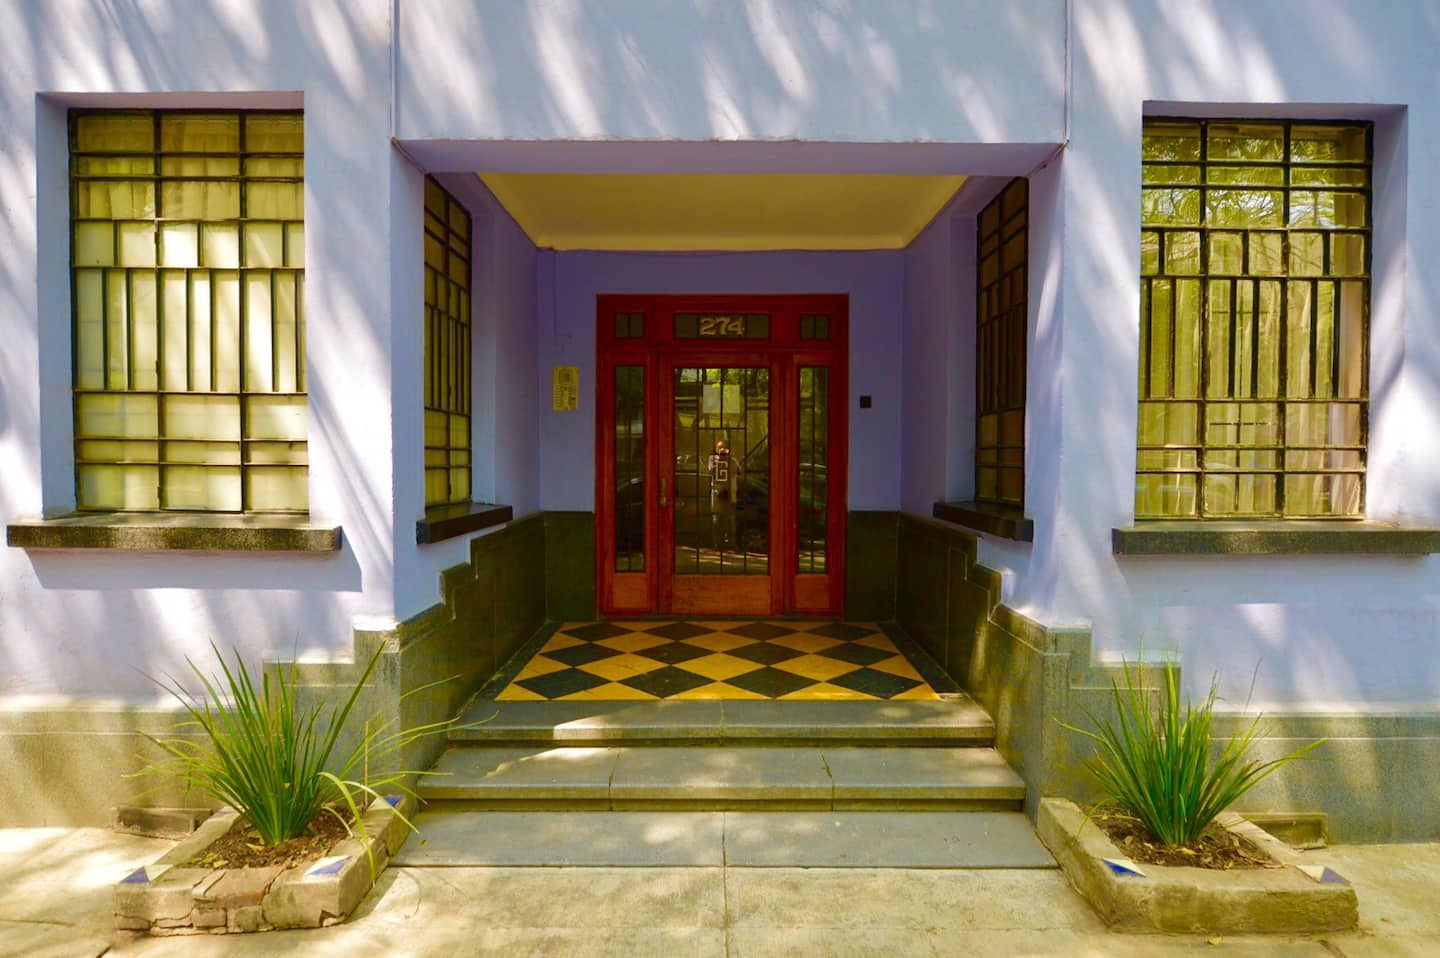 VRBO Mexico City: Purple building with red door and a vintage art deco style look